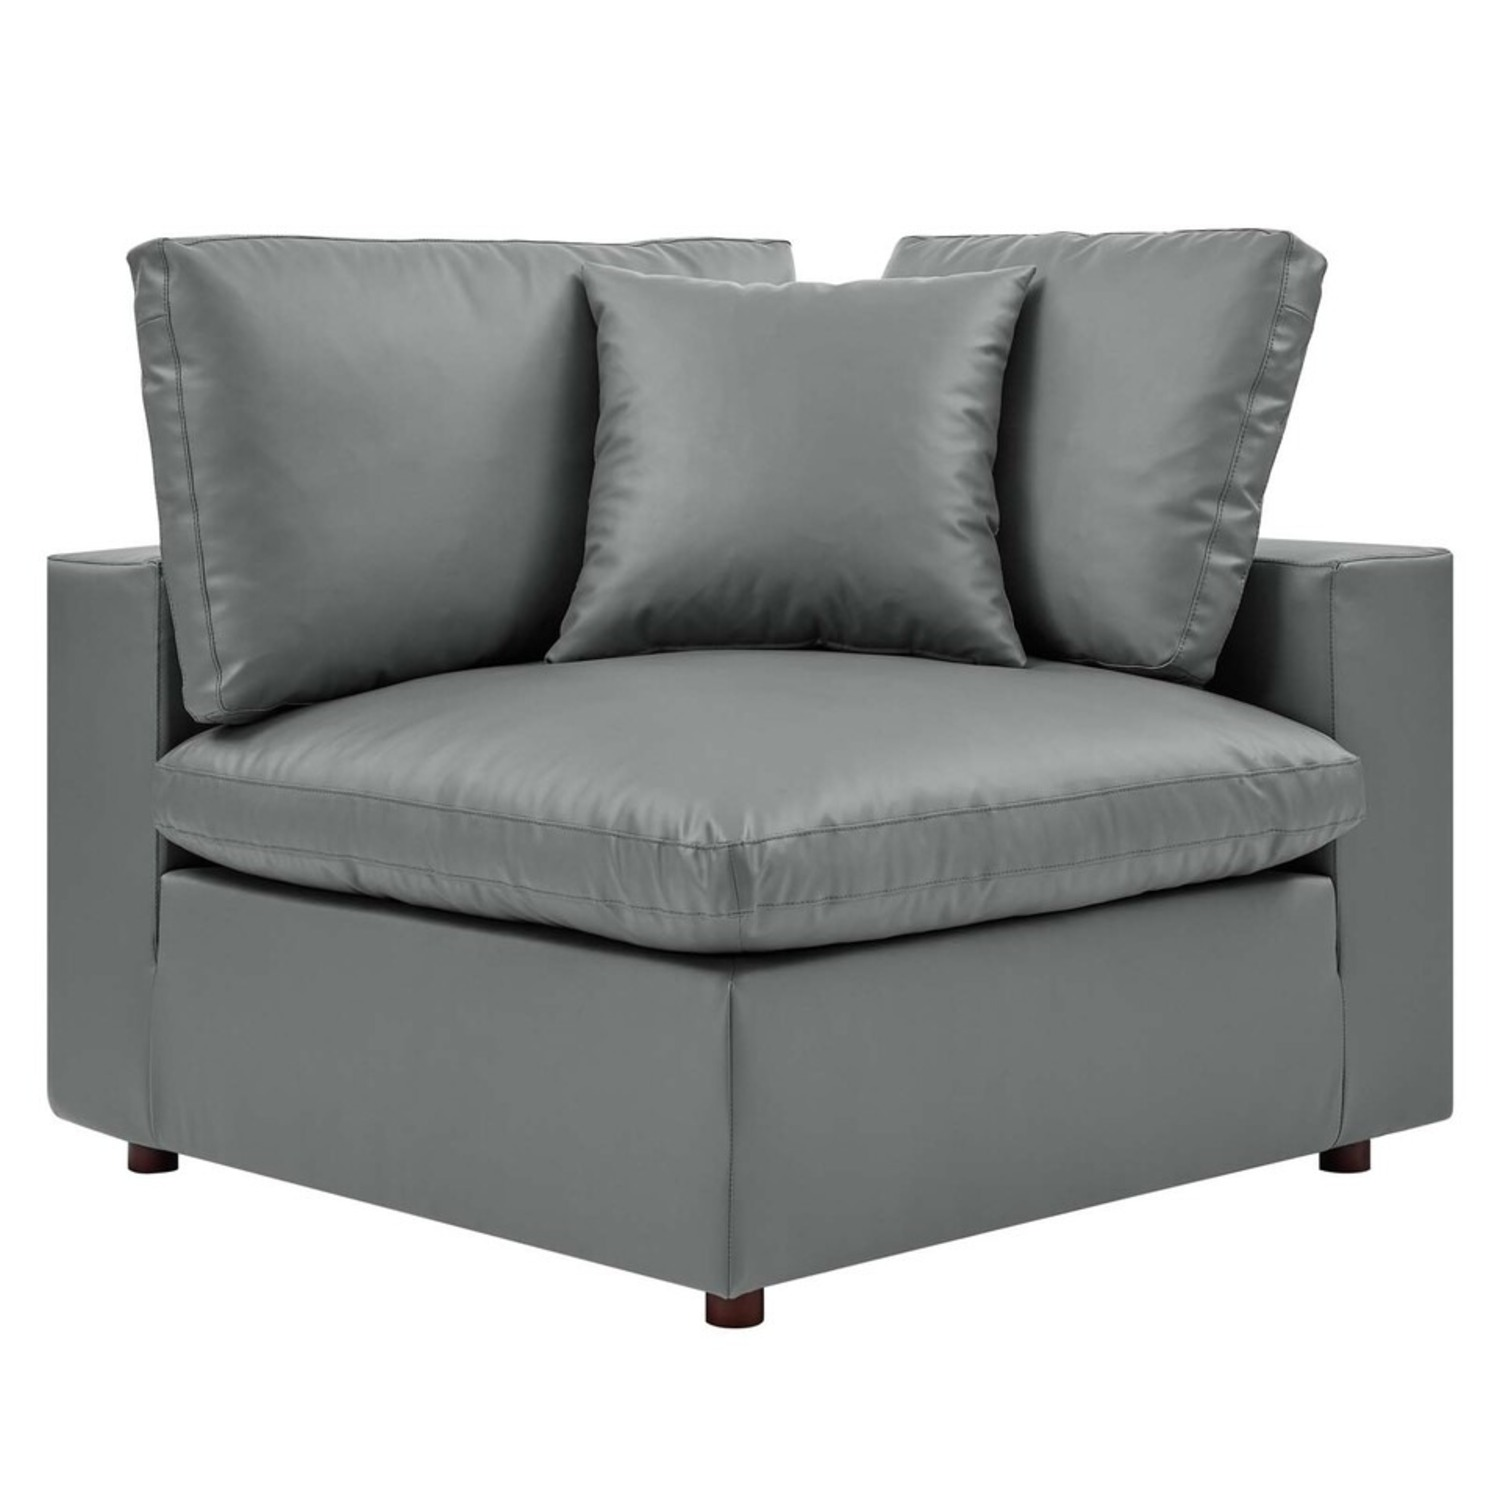 8-Piece Sectional Sofa In Gray Vegan Leather - image-5